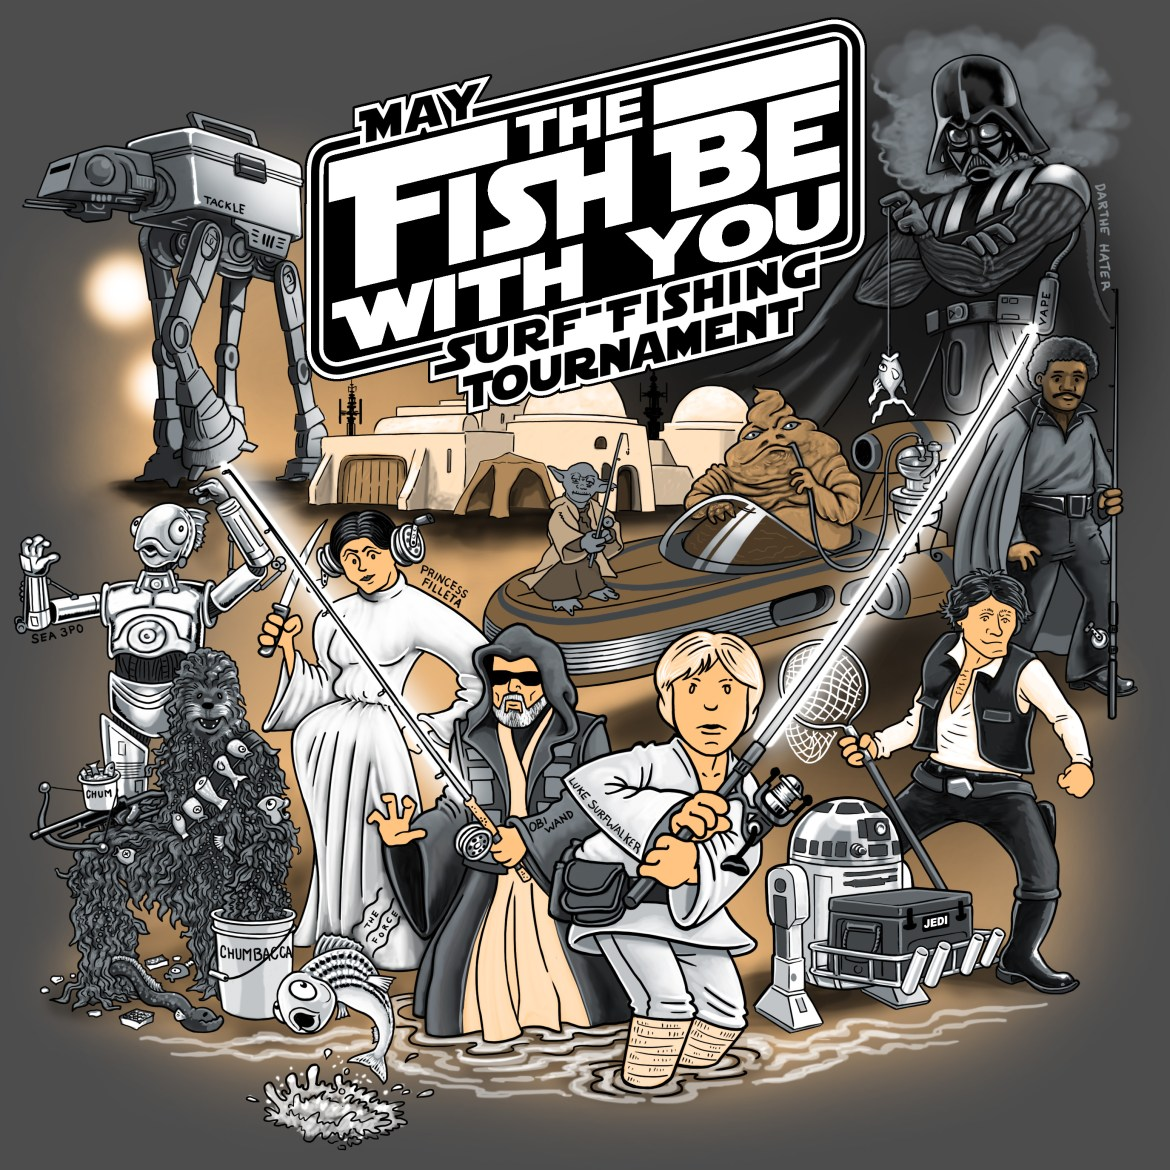 May The fish Be With You surf fishing tournament, delaware, sussex county, star wars parody,